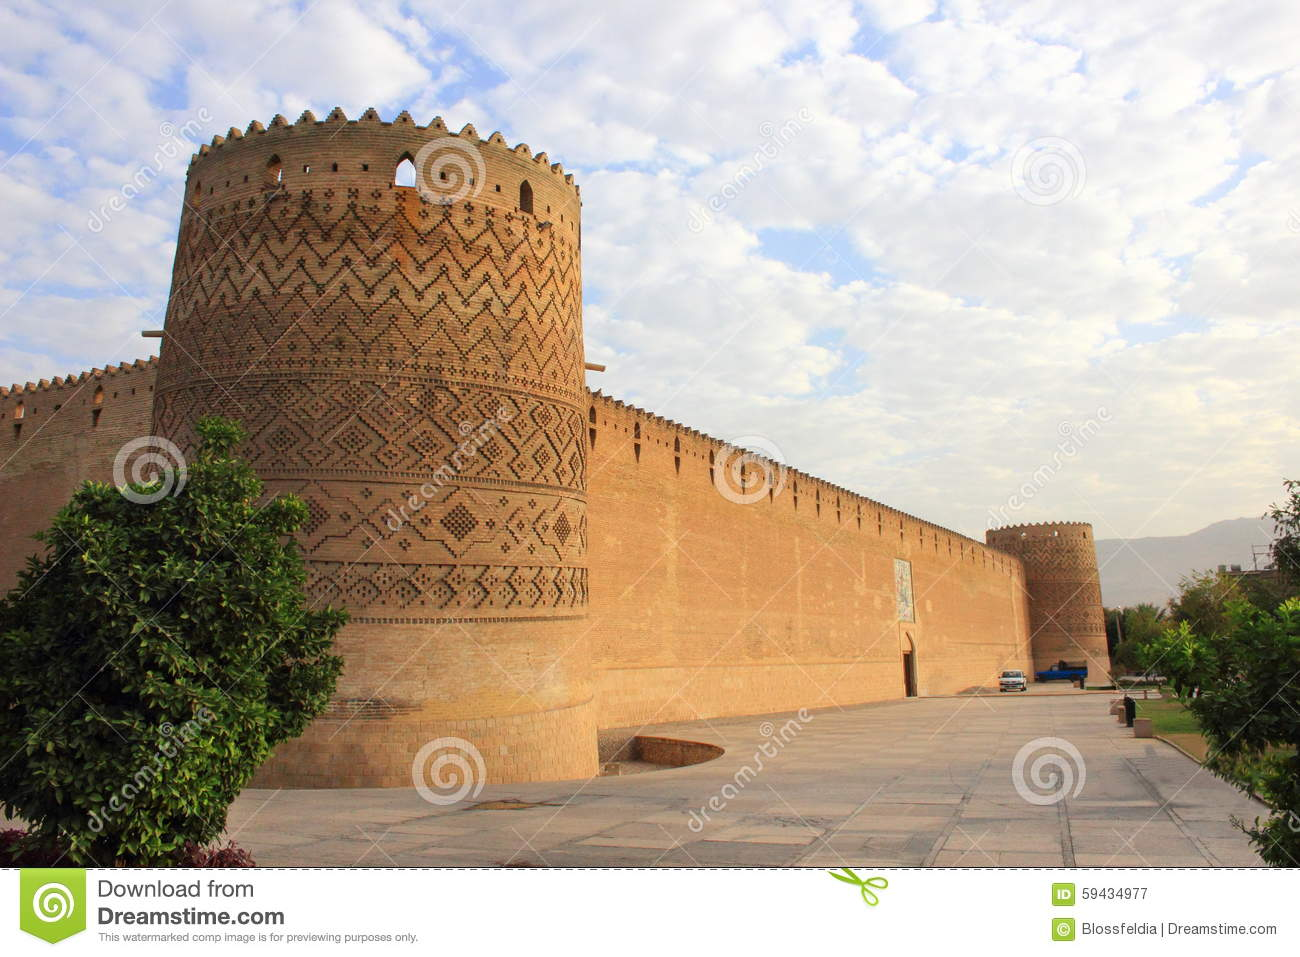 The Karim Khan Castle in Shiraz city, Iran.